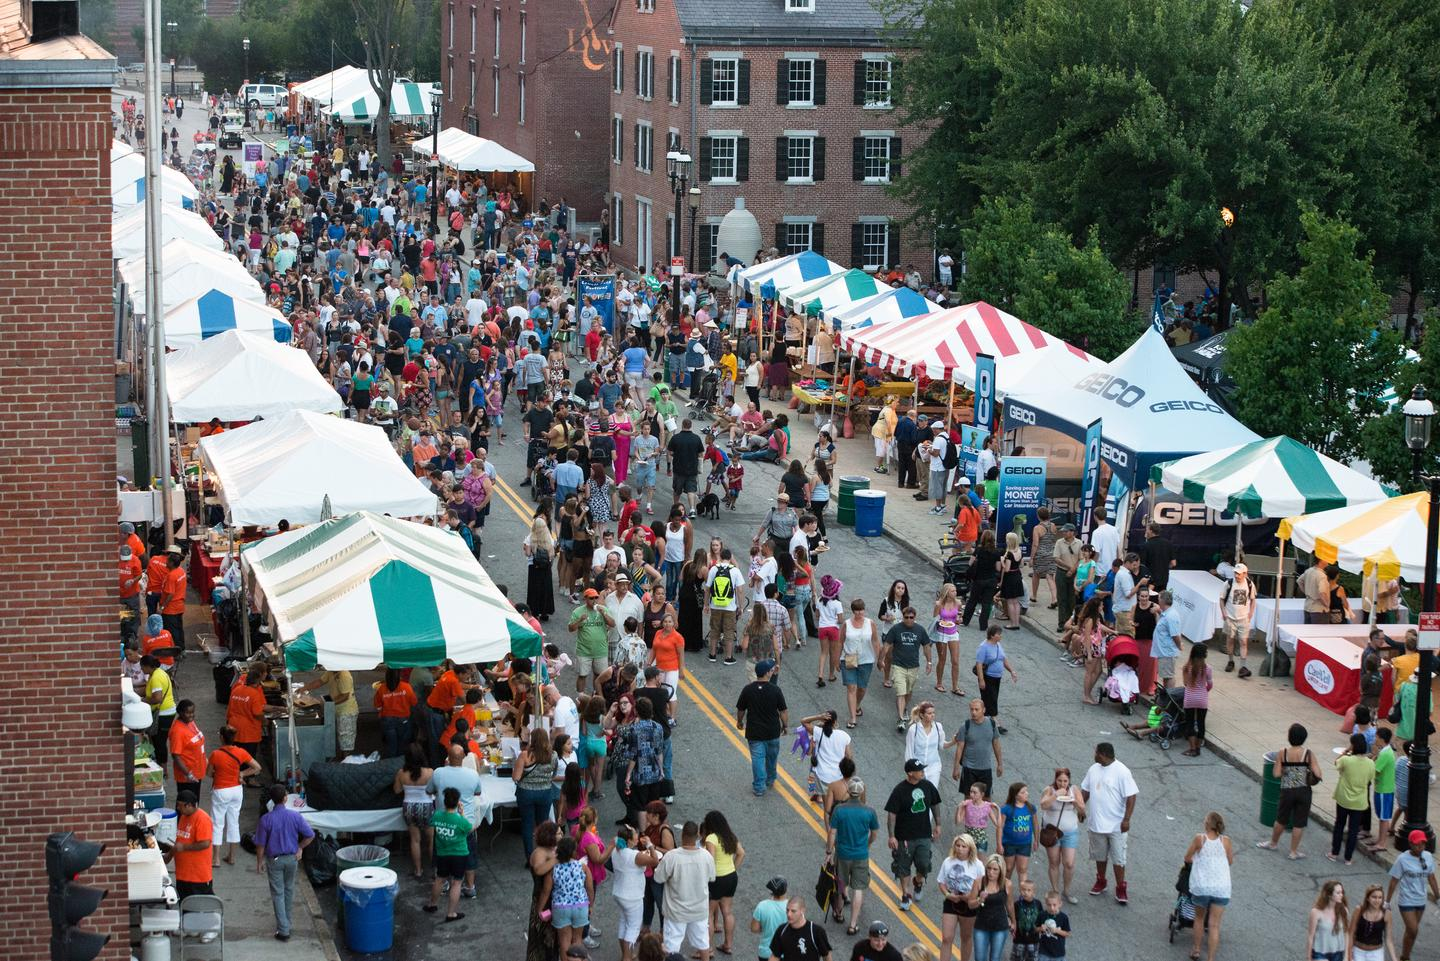 Lowell Folk FestivalThe Lowell Folk Festival, Lowell's signature annual event, brings traditional folk performers to 5 stages throughout the city and a huge variety of traditional ethnic foods from all around the world.